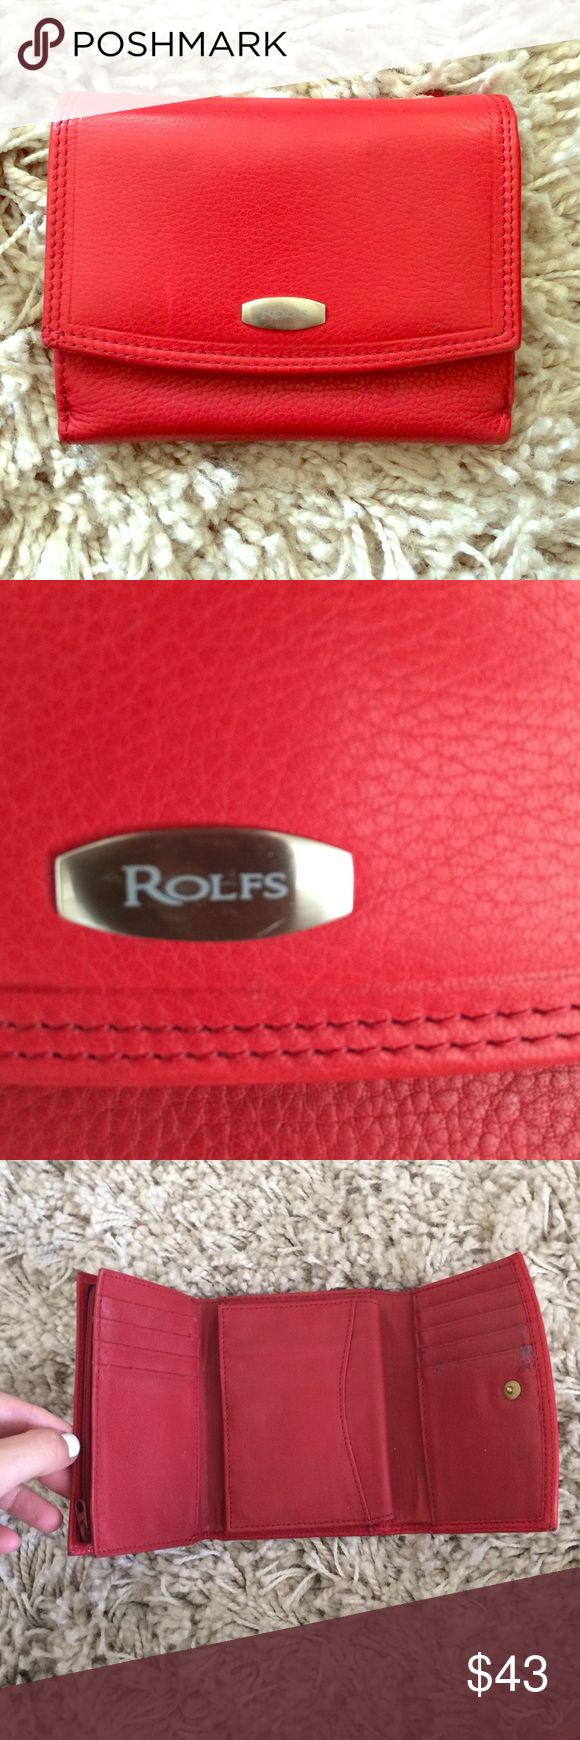 Vintage red Rolfs wallet Good condition. A little wear inside. Red Rolfs wallet. Has a lot of pockets, card slots, change pocket in back and inside. Really nice! Rolfs Bags Wallets